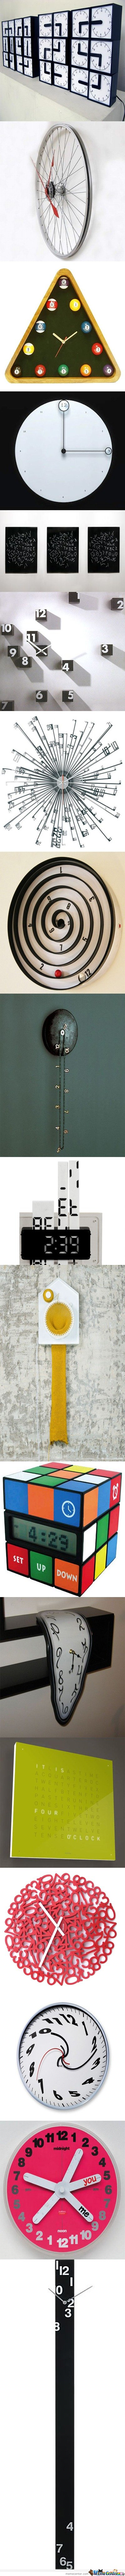 Interesting Clock Designs (1st one is my fav)